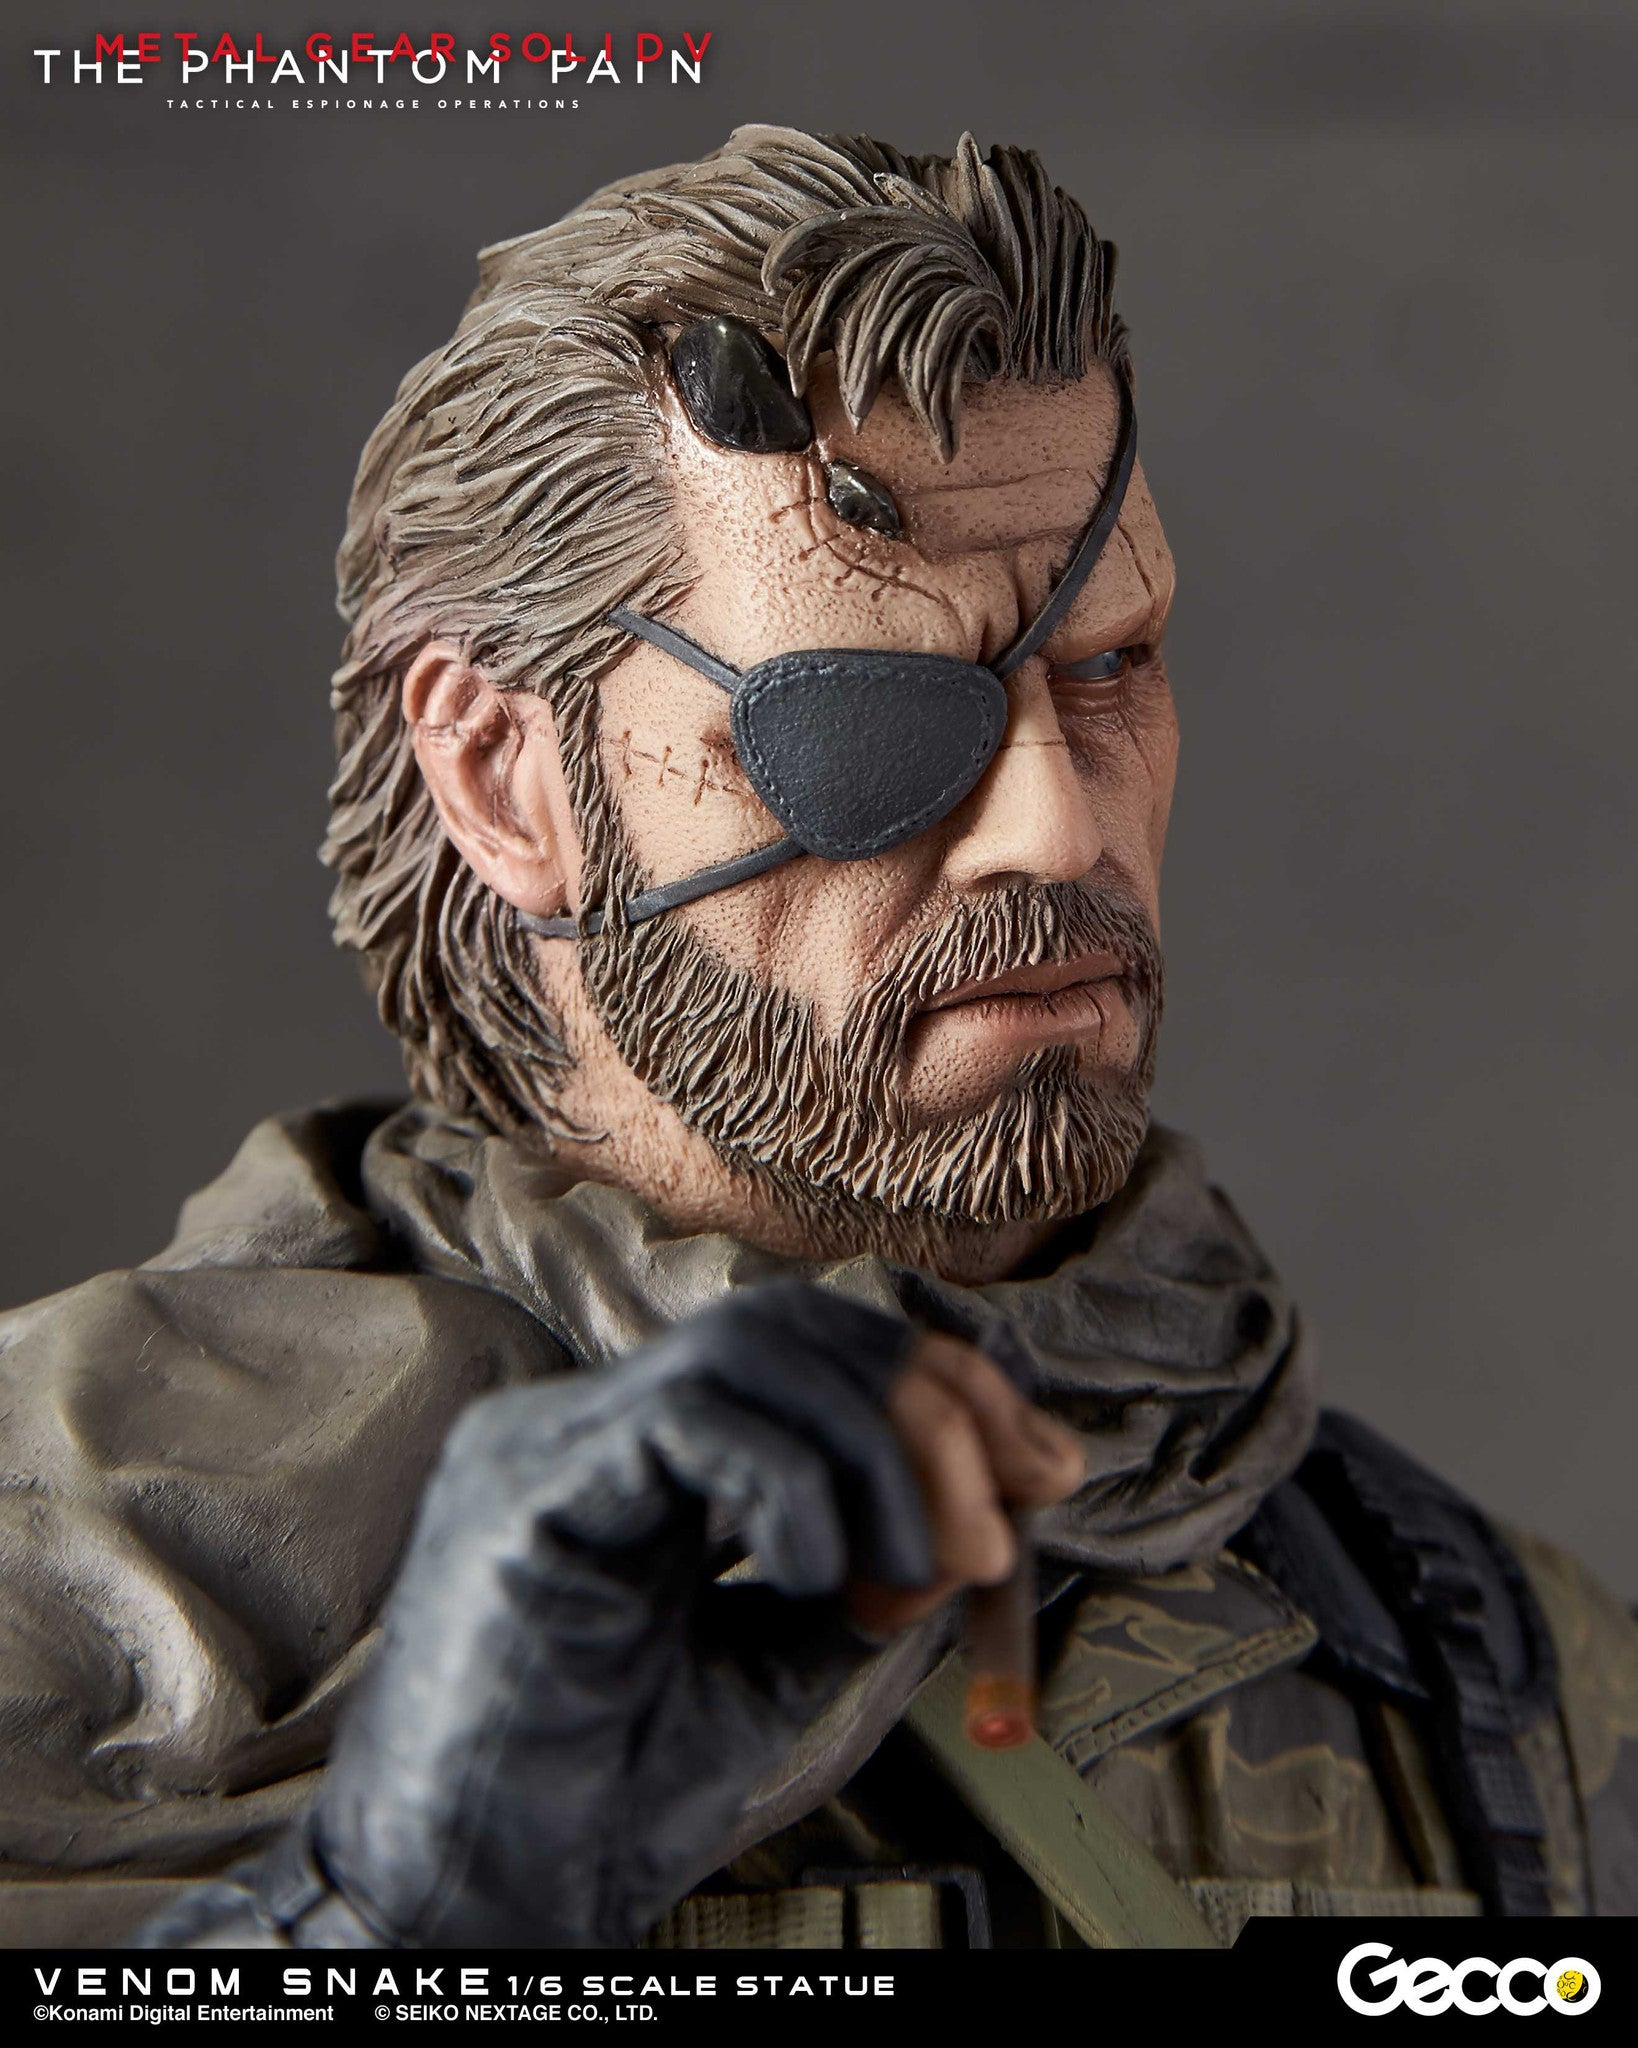 Gecco - Metal Gear Solid V: The Phantom Pain - Venom Snake 1/6 Scale Statue - Marvelous Toys - 12